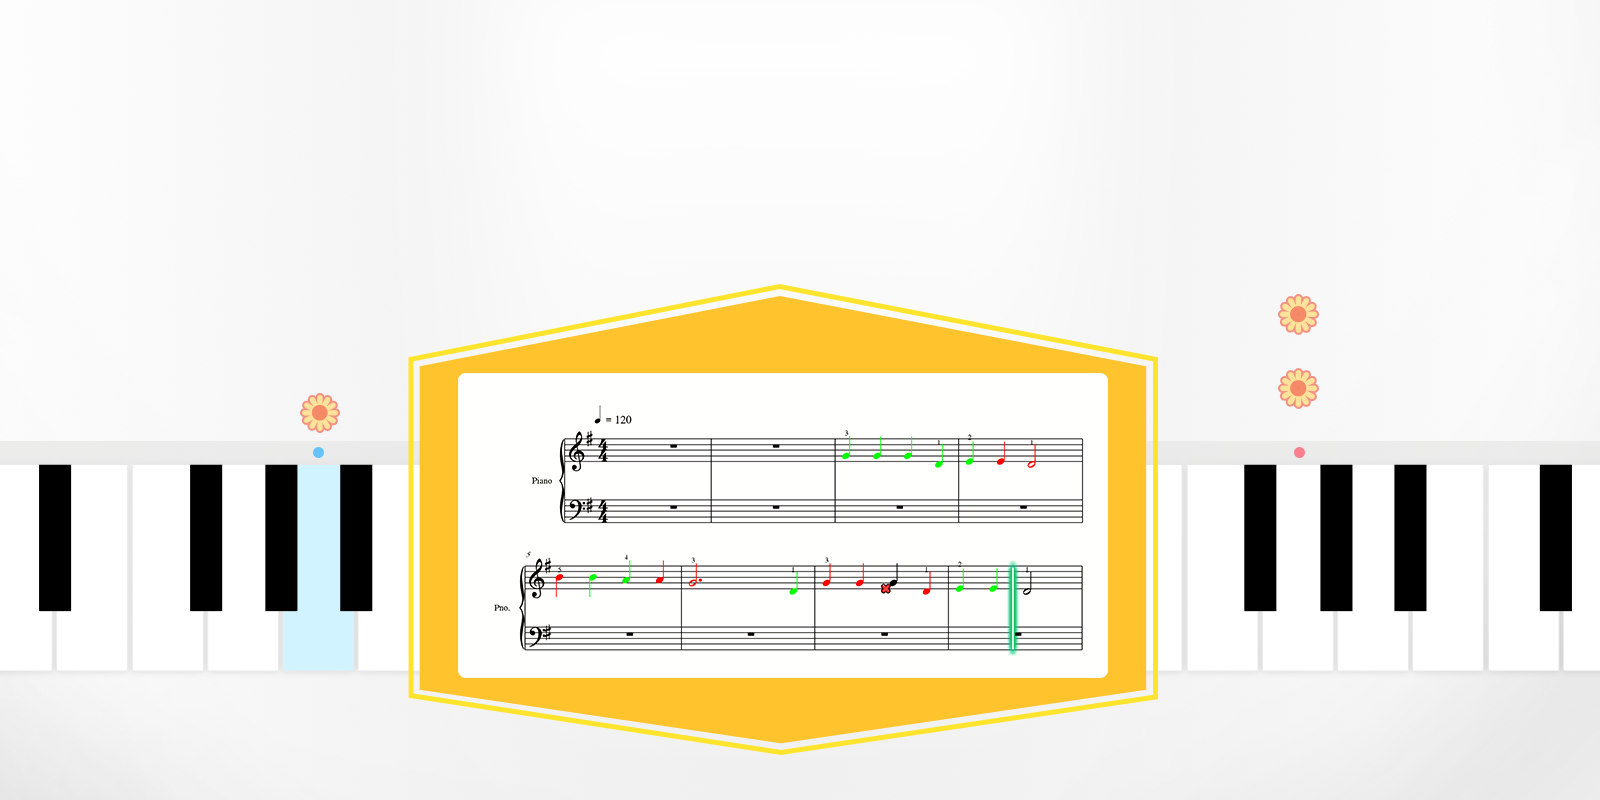 Best Piano Lessons Melbourne The One Smart Australia Keyboard Diagram